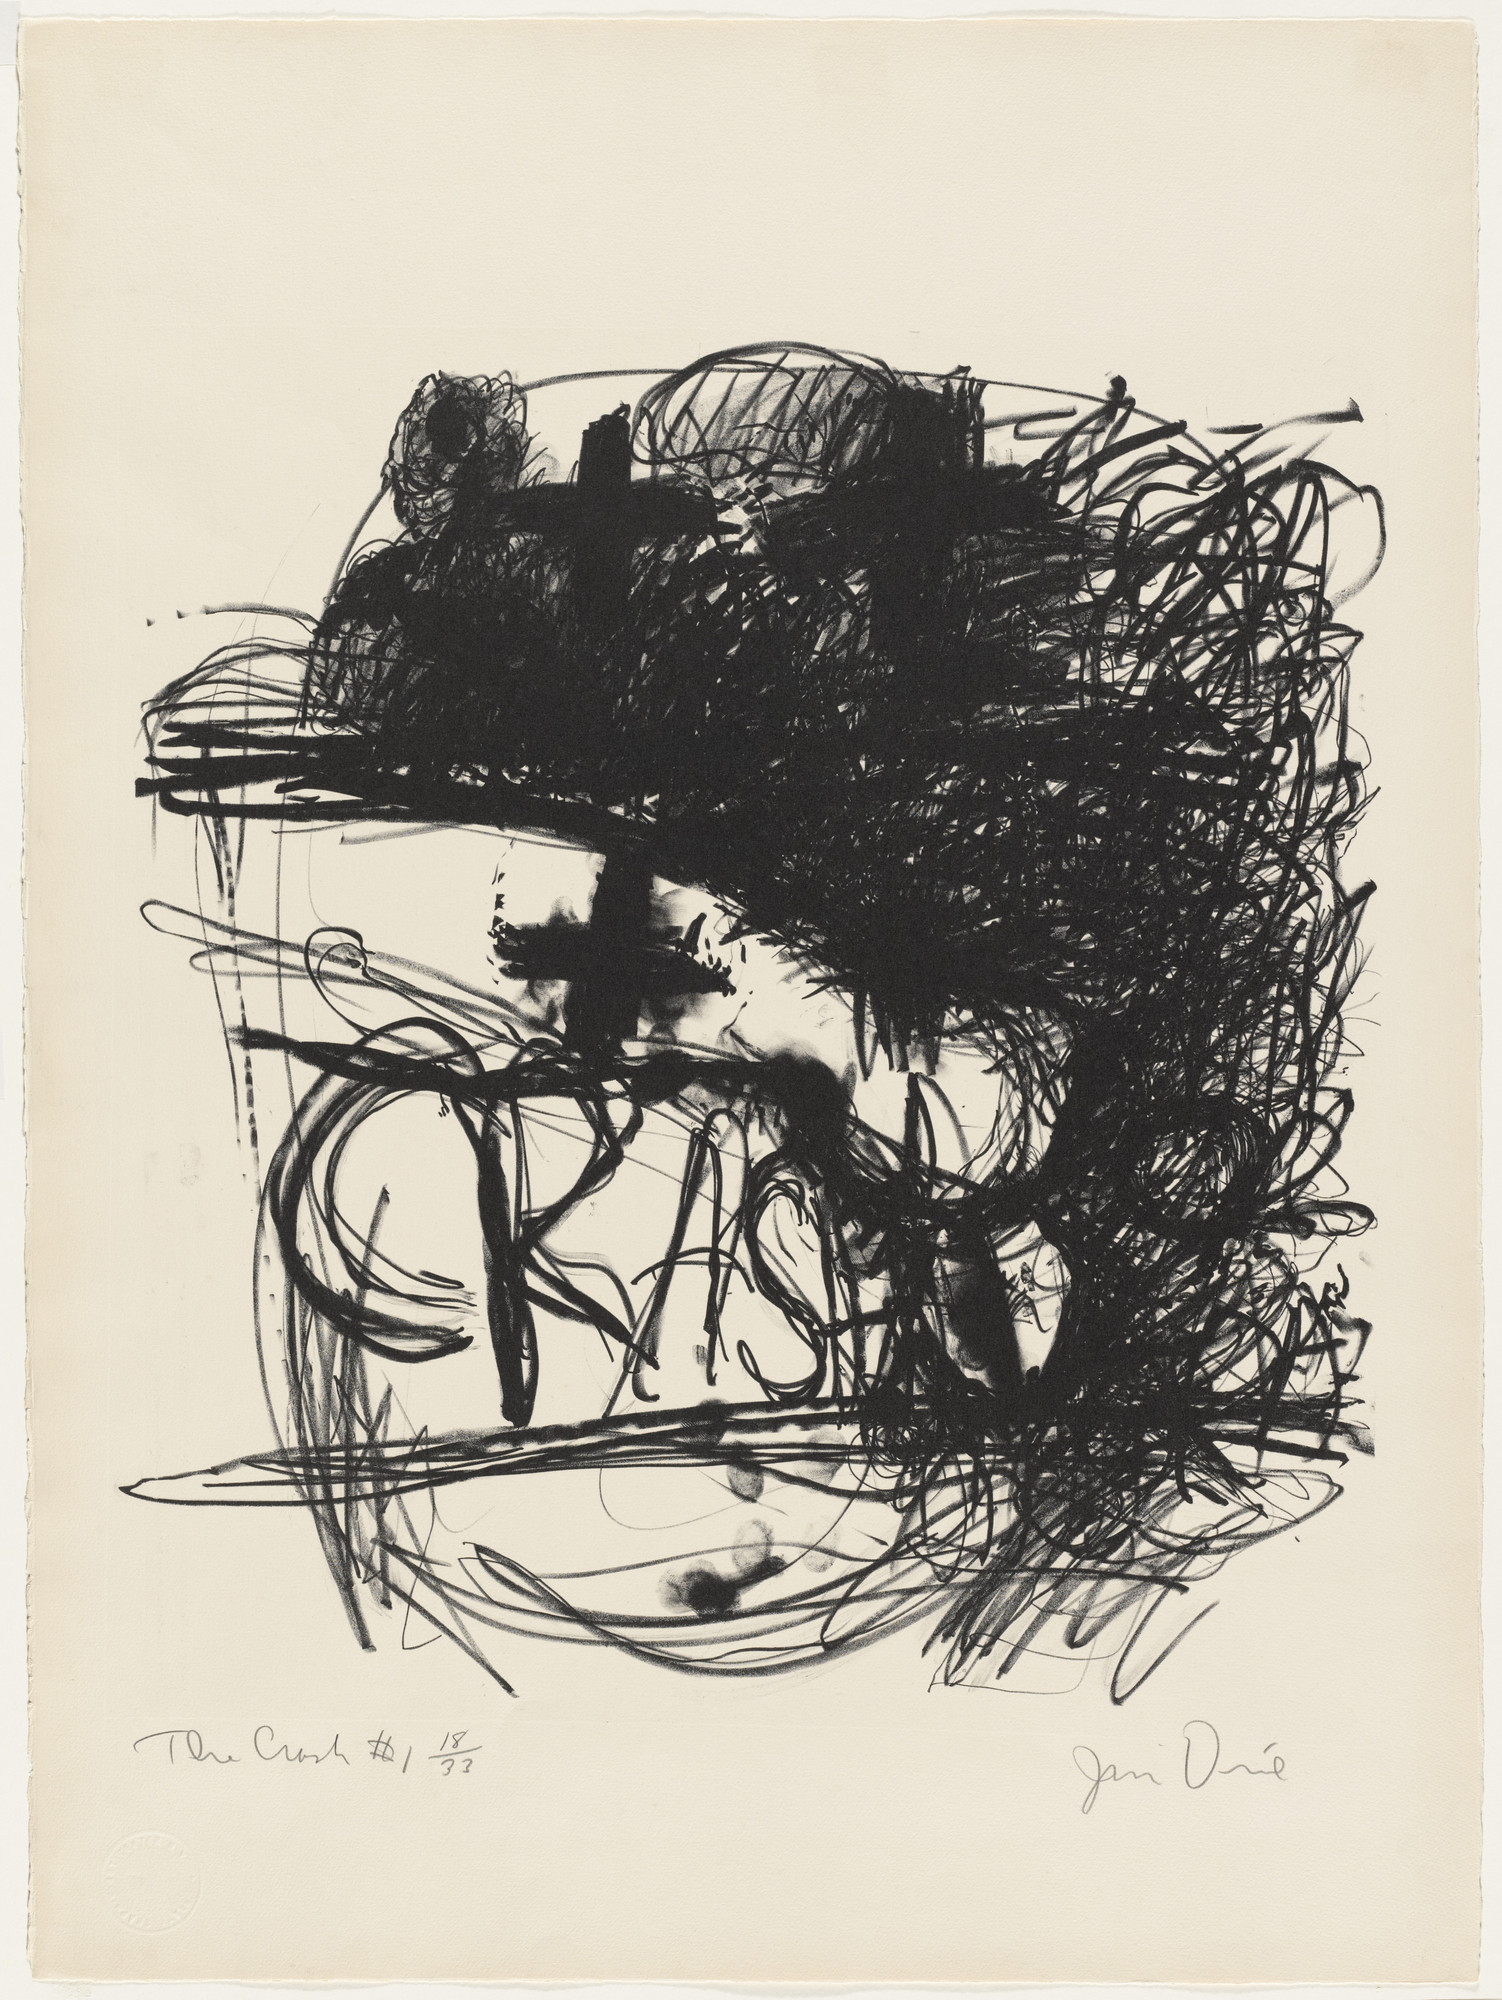 Jim Dine. Car Crash I. (1960)